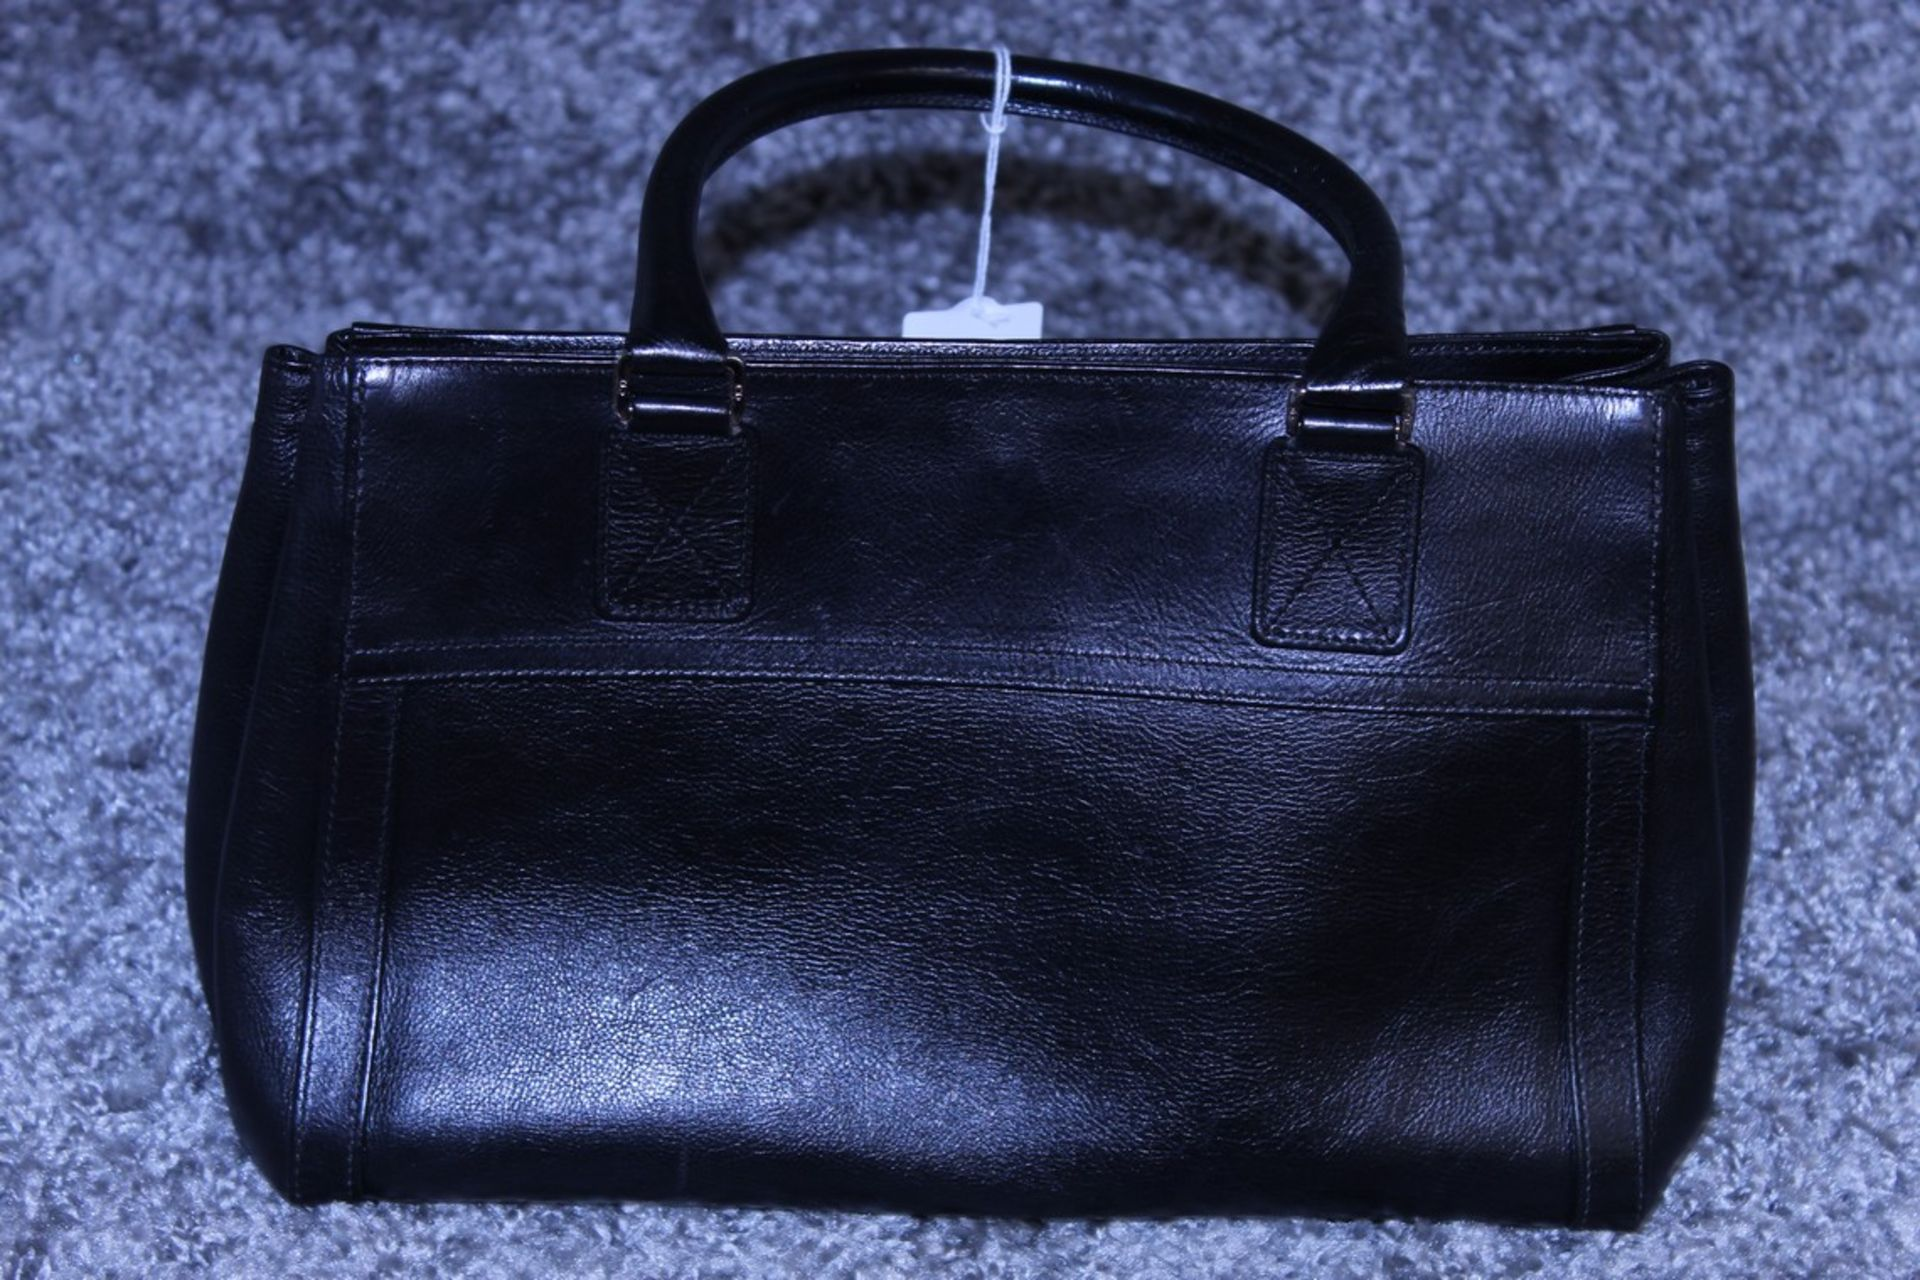 RRP £1300 Dior Interlocking D Belt Handbag In Black Calf Leather With Black Leather Handles. ( - Image 2 of 4